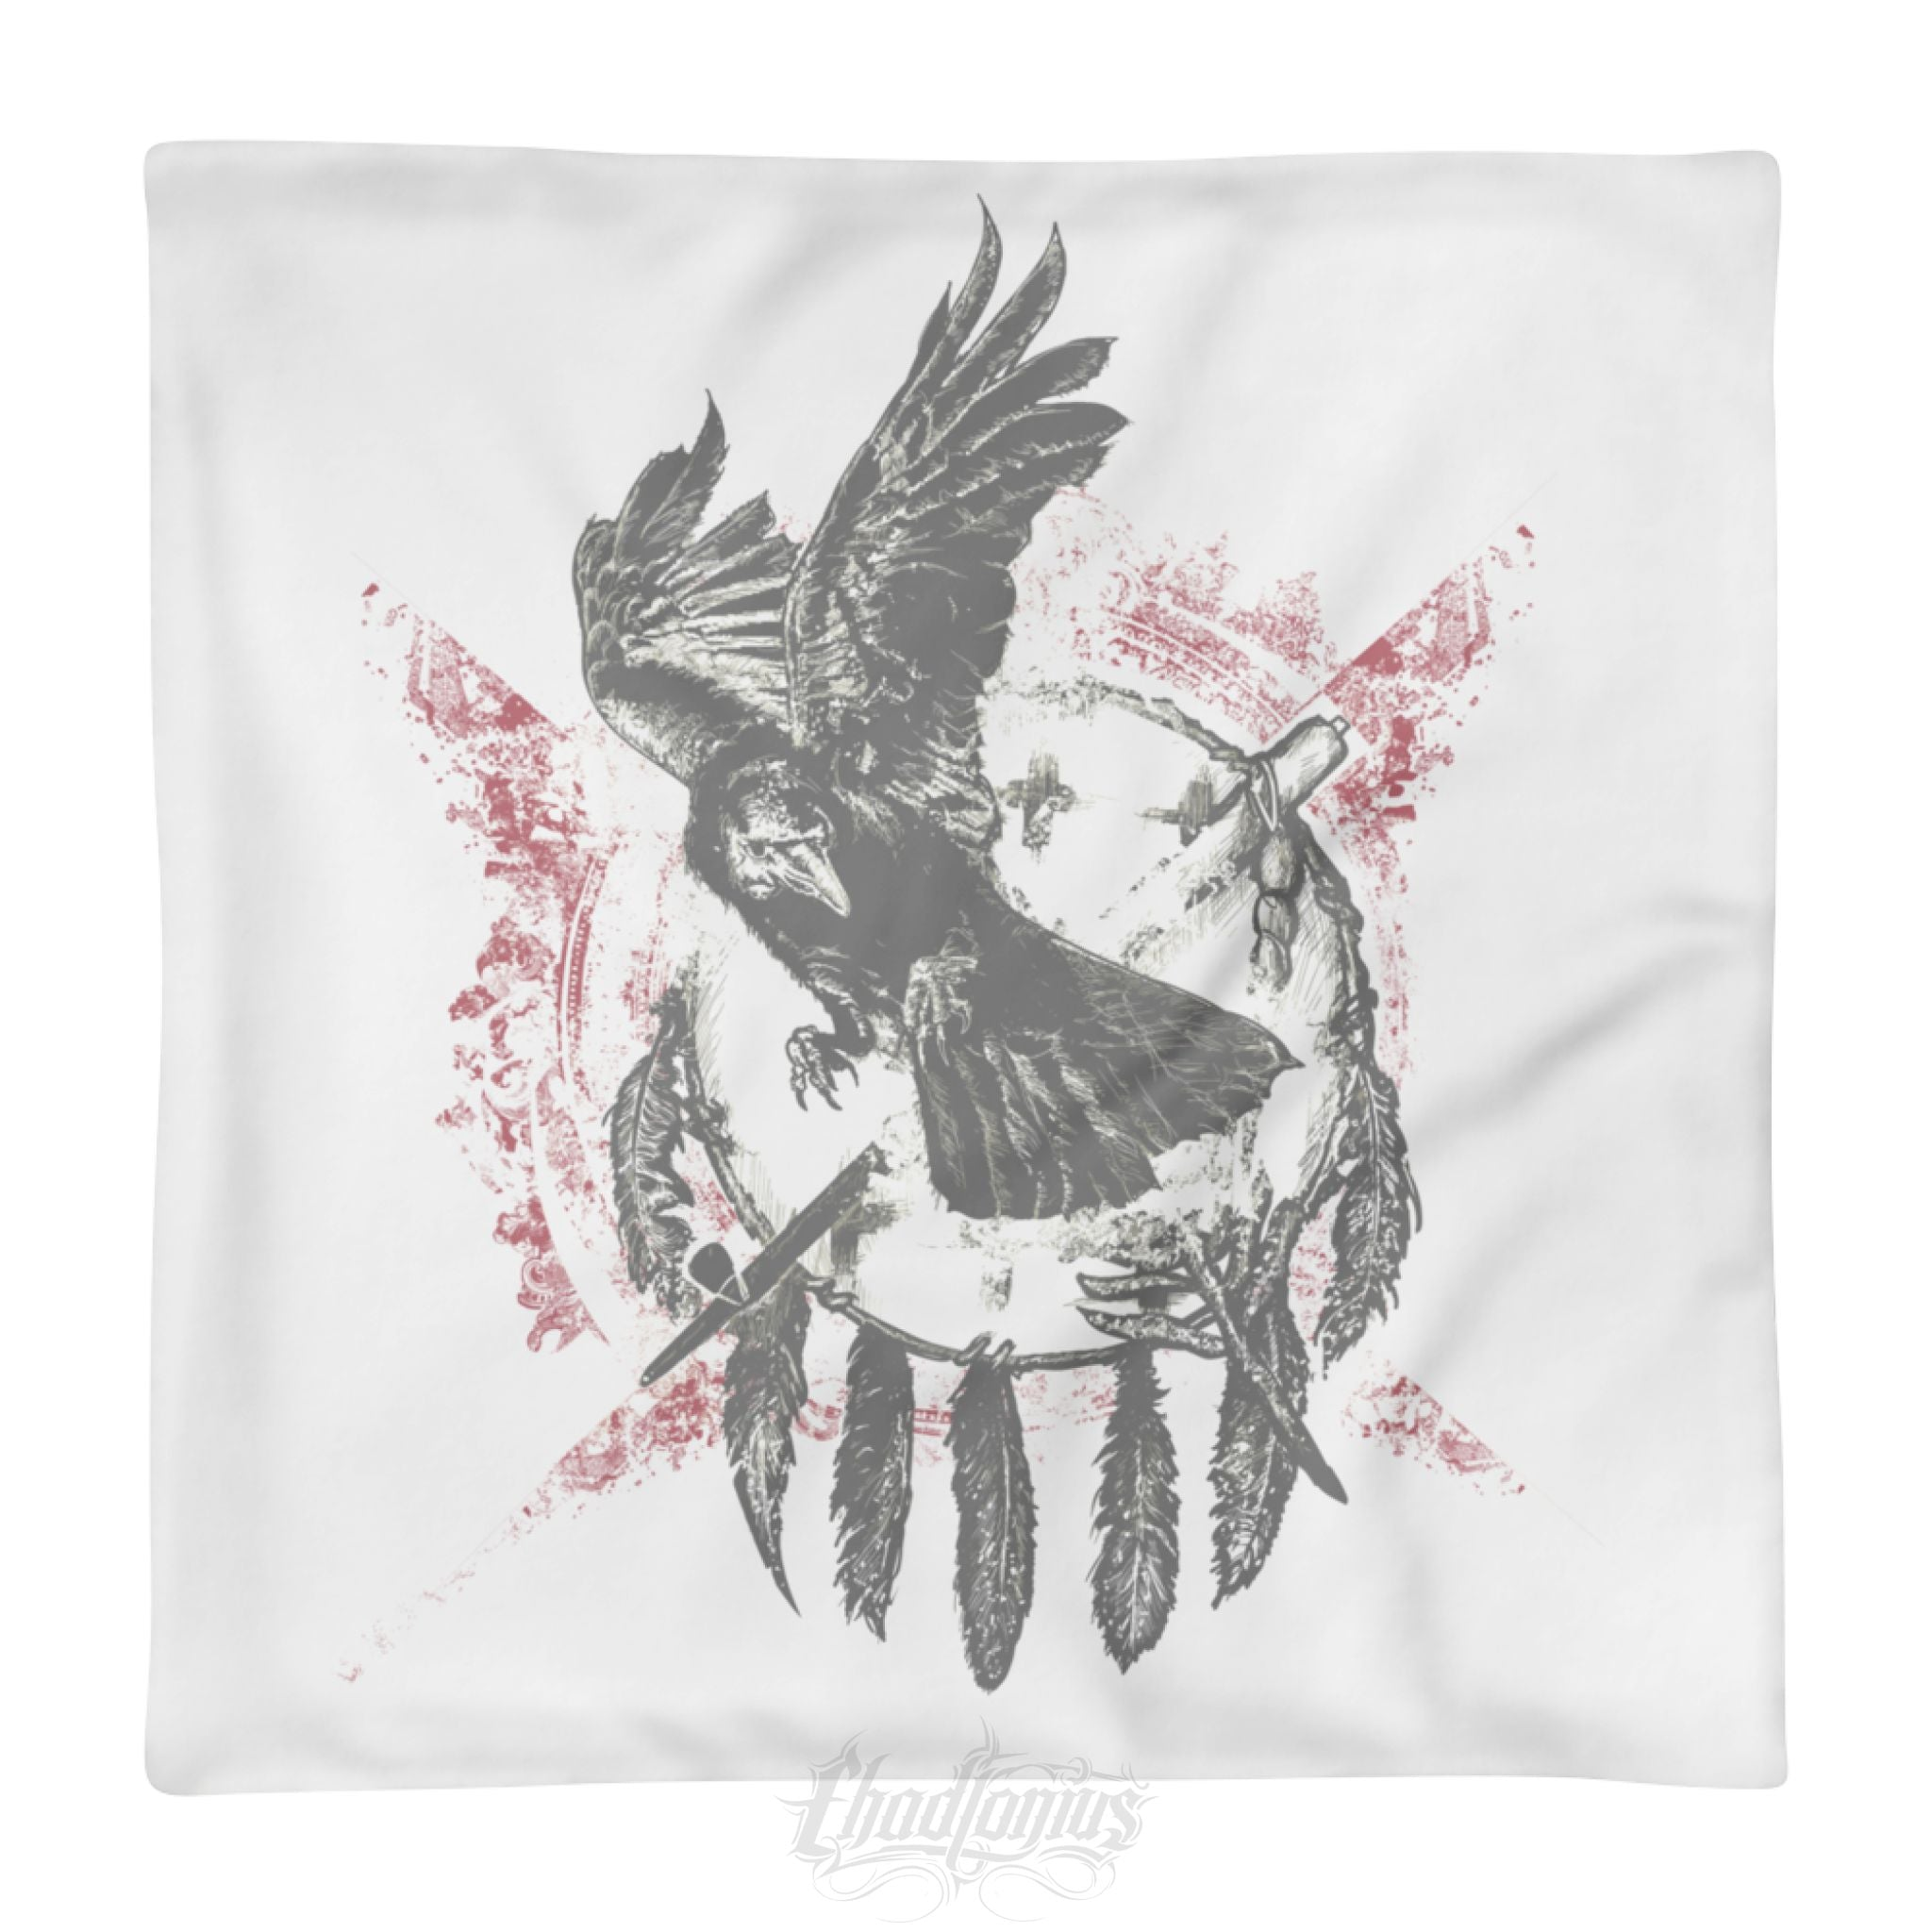 THE RAVEN - Square Pillow Case only